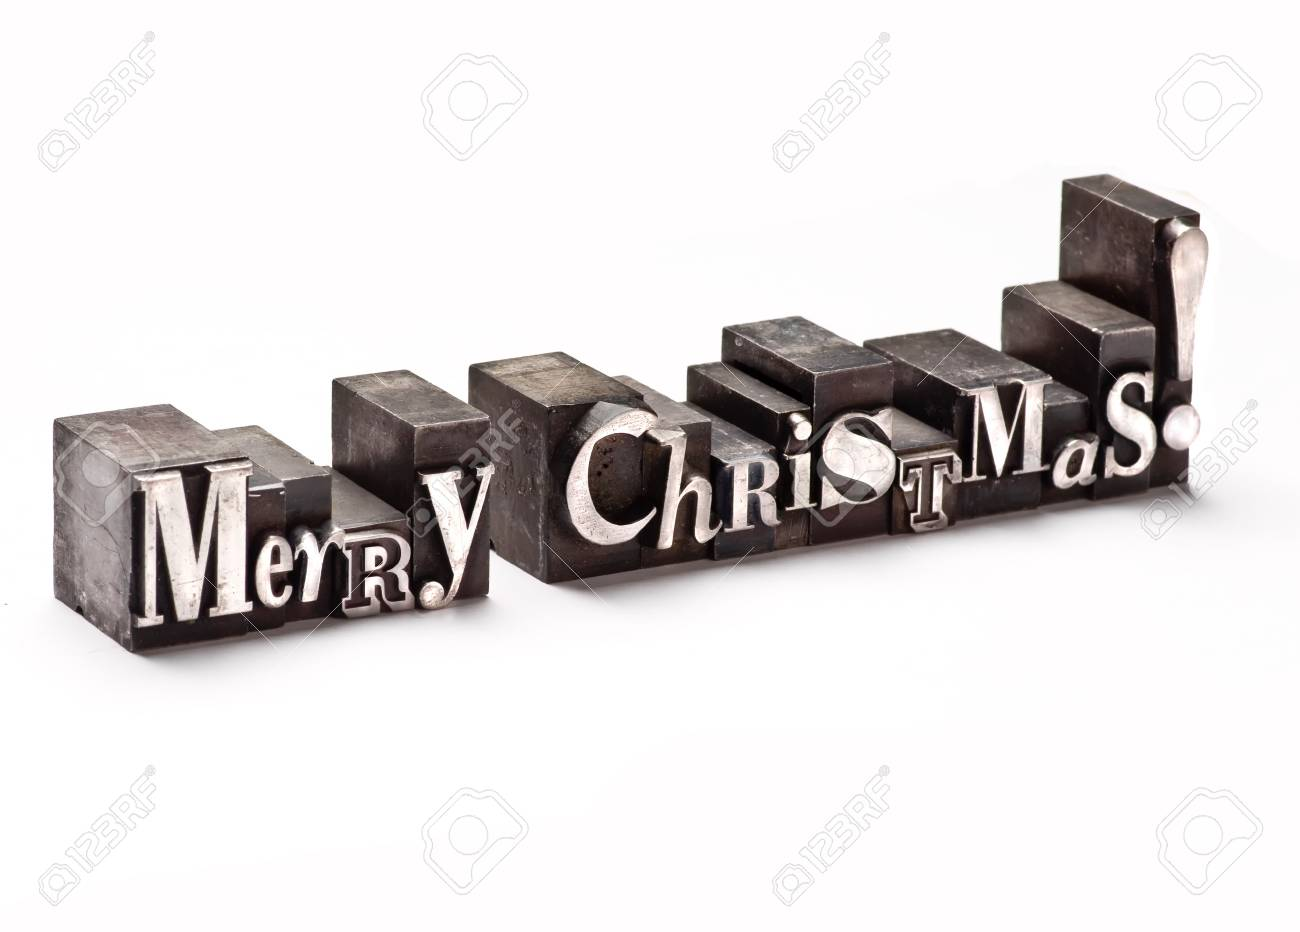 The phrase Merry Christmas in letterpress type Stock Photo - 3593465